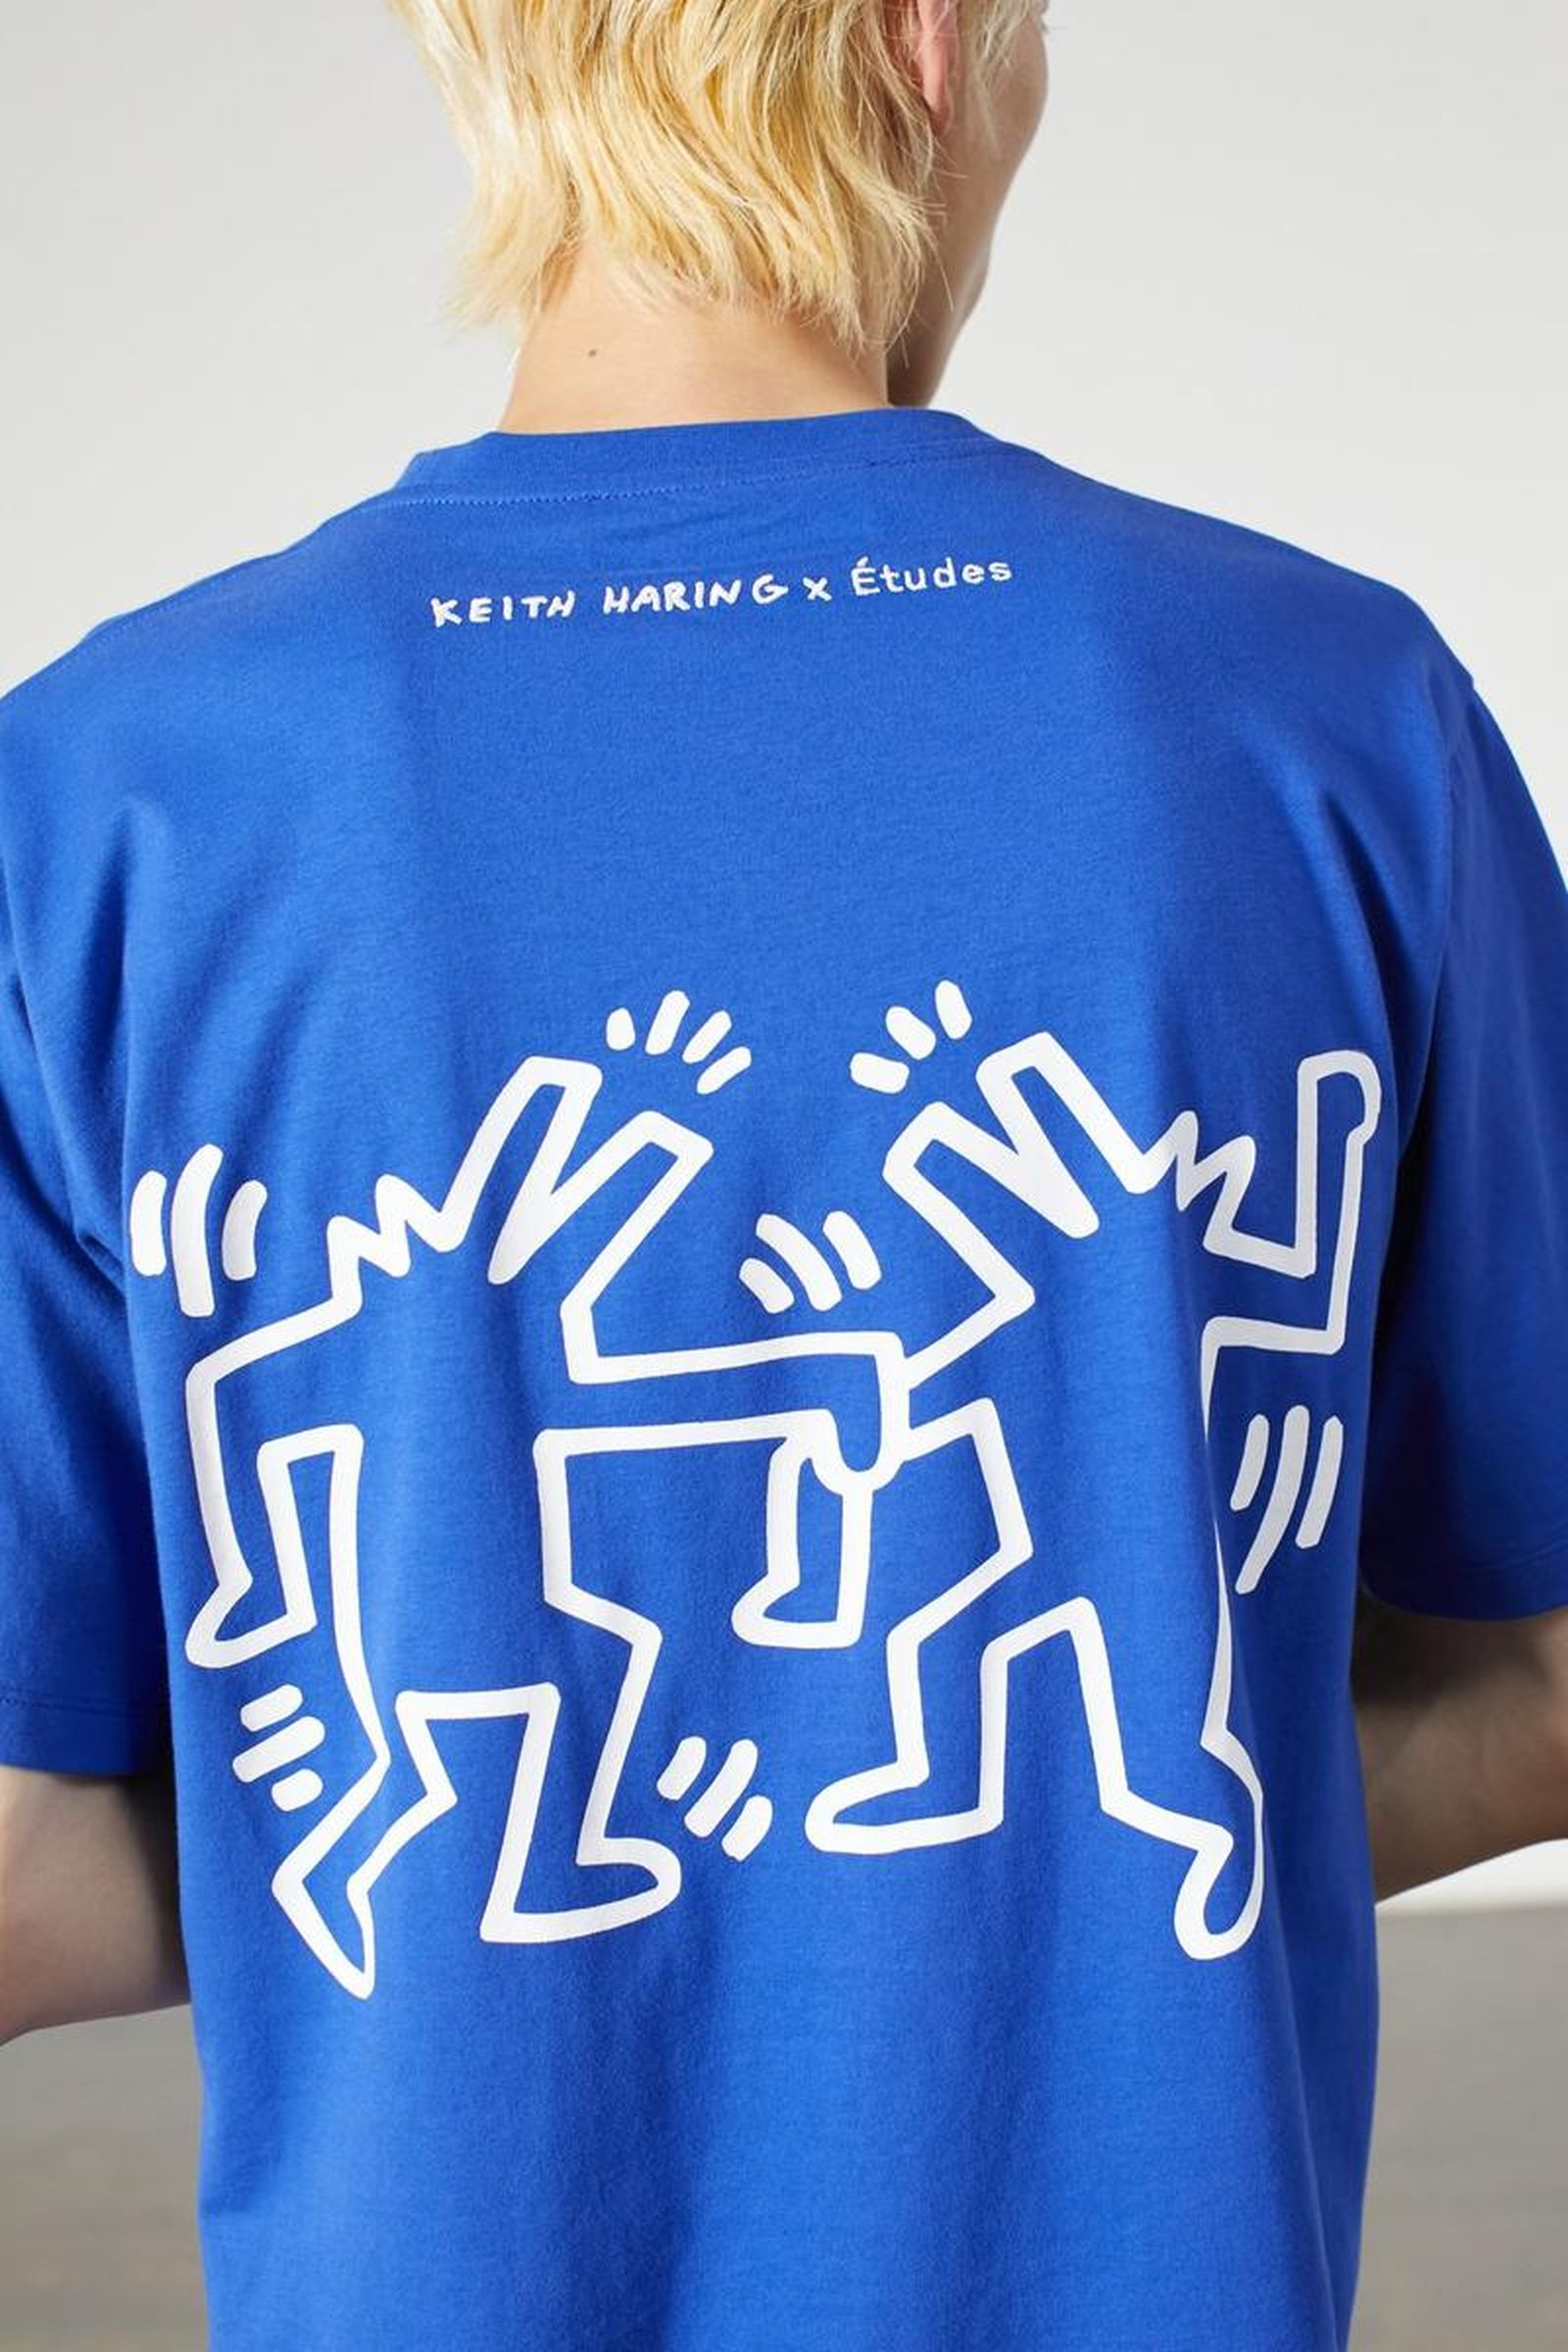 2etudes-keith-haring-ss20-collection